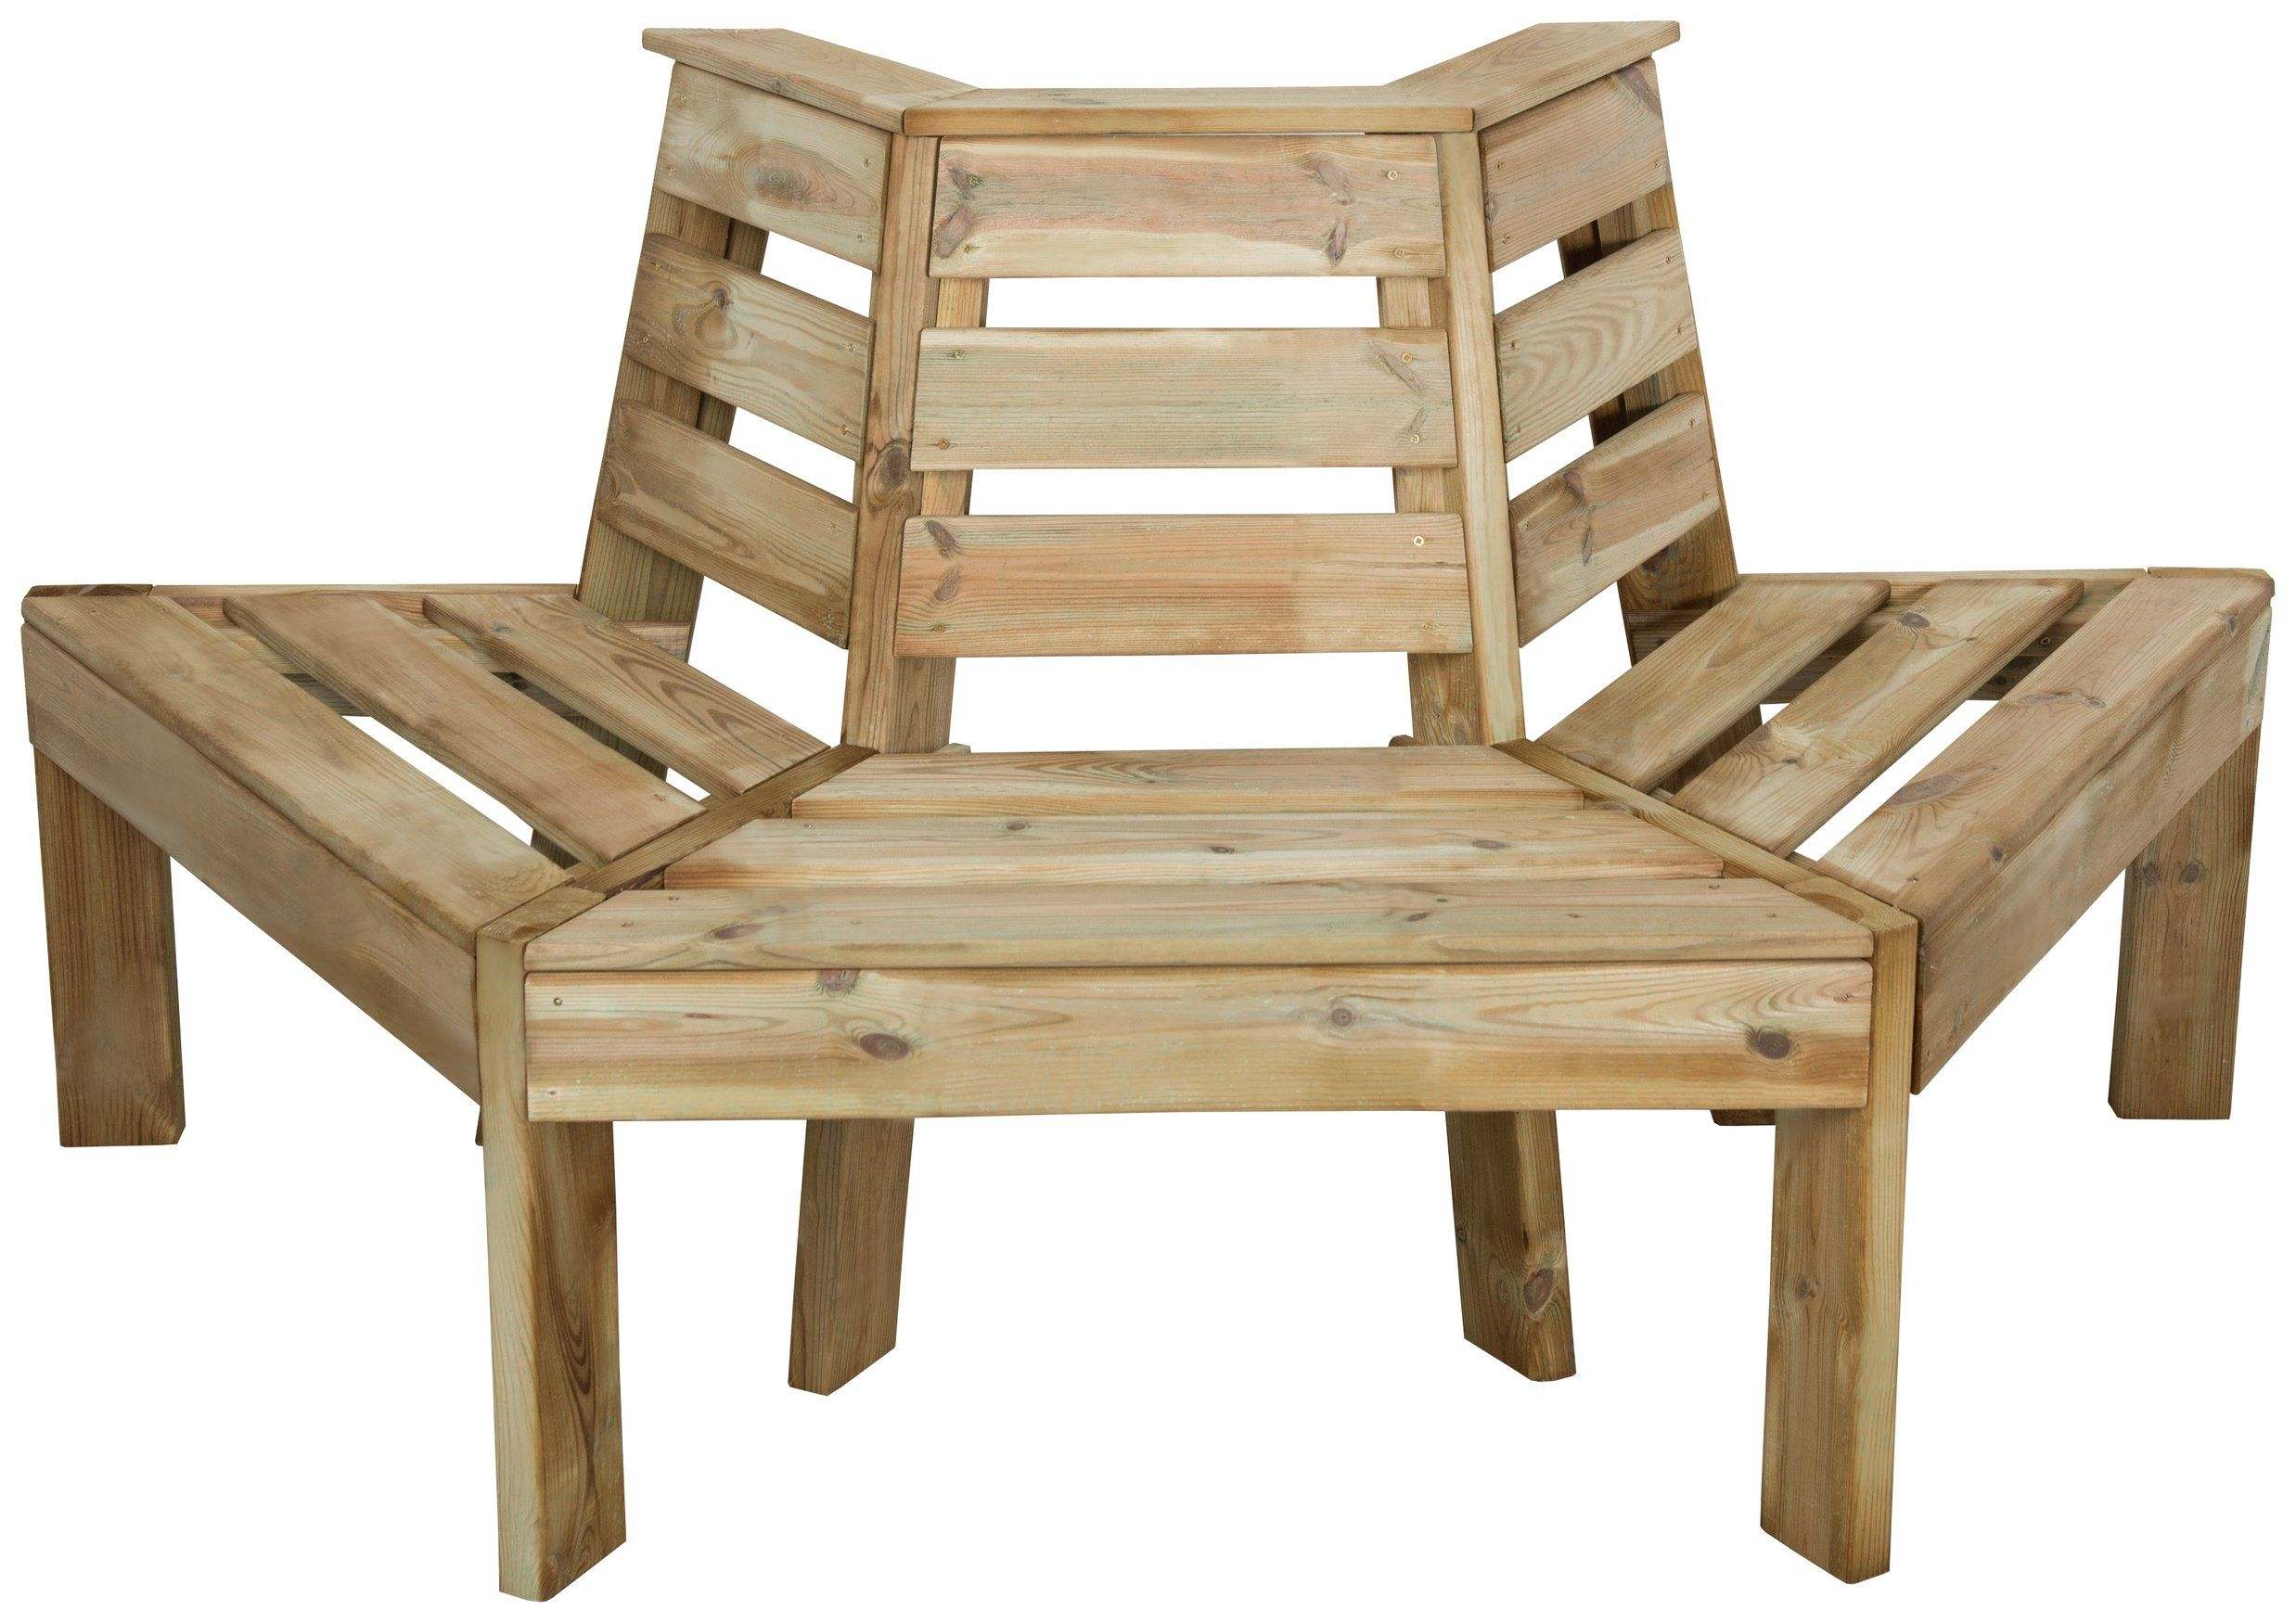 Forest Timber Tree Seat in 2020 Tree seat, Wooden tree